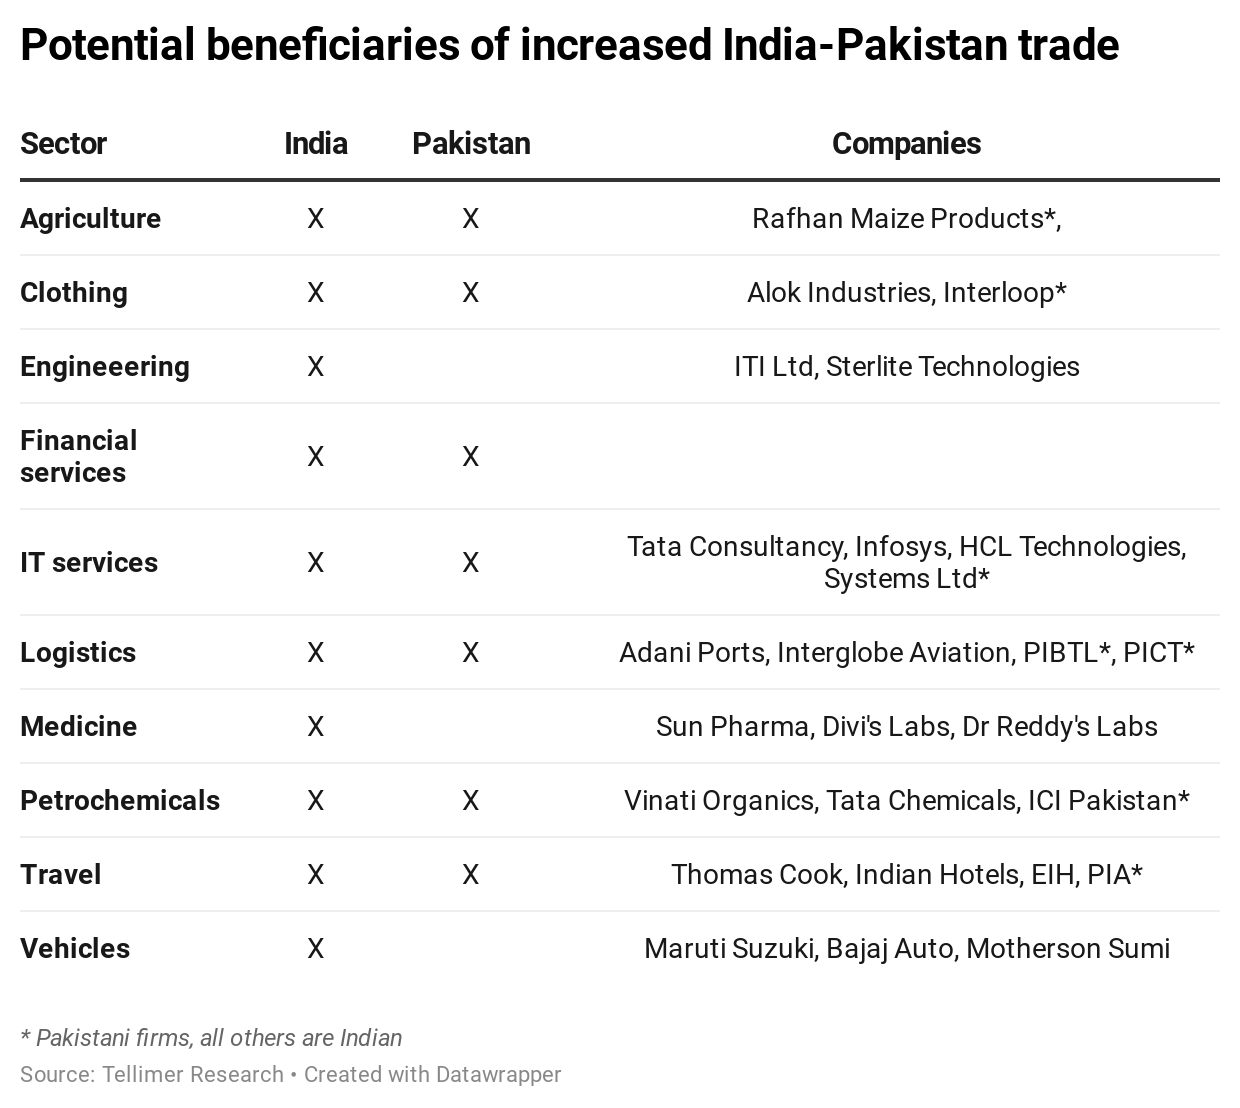 Potential beneficiaries of increased India-Pakistan trade